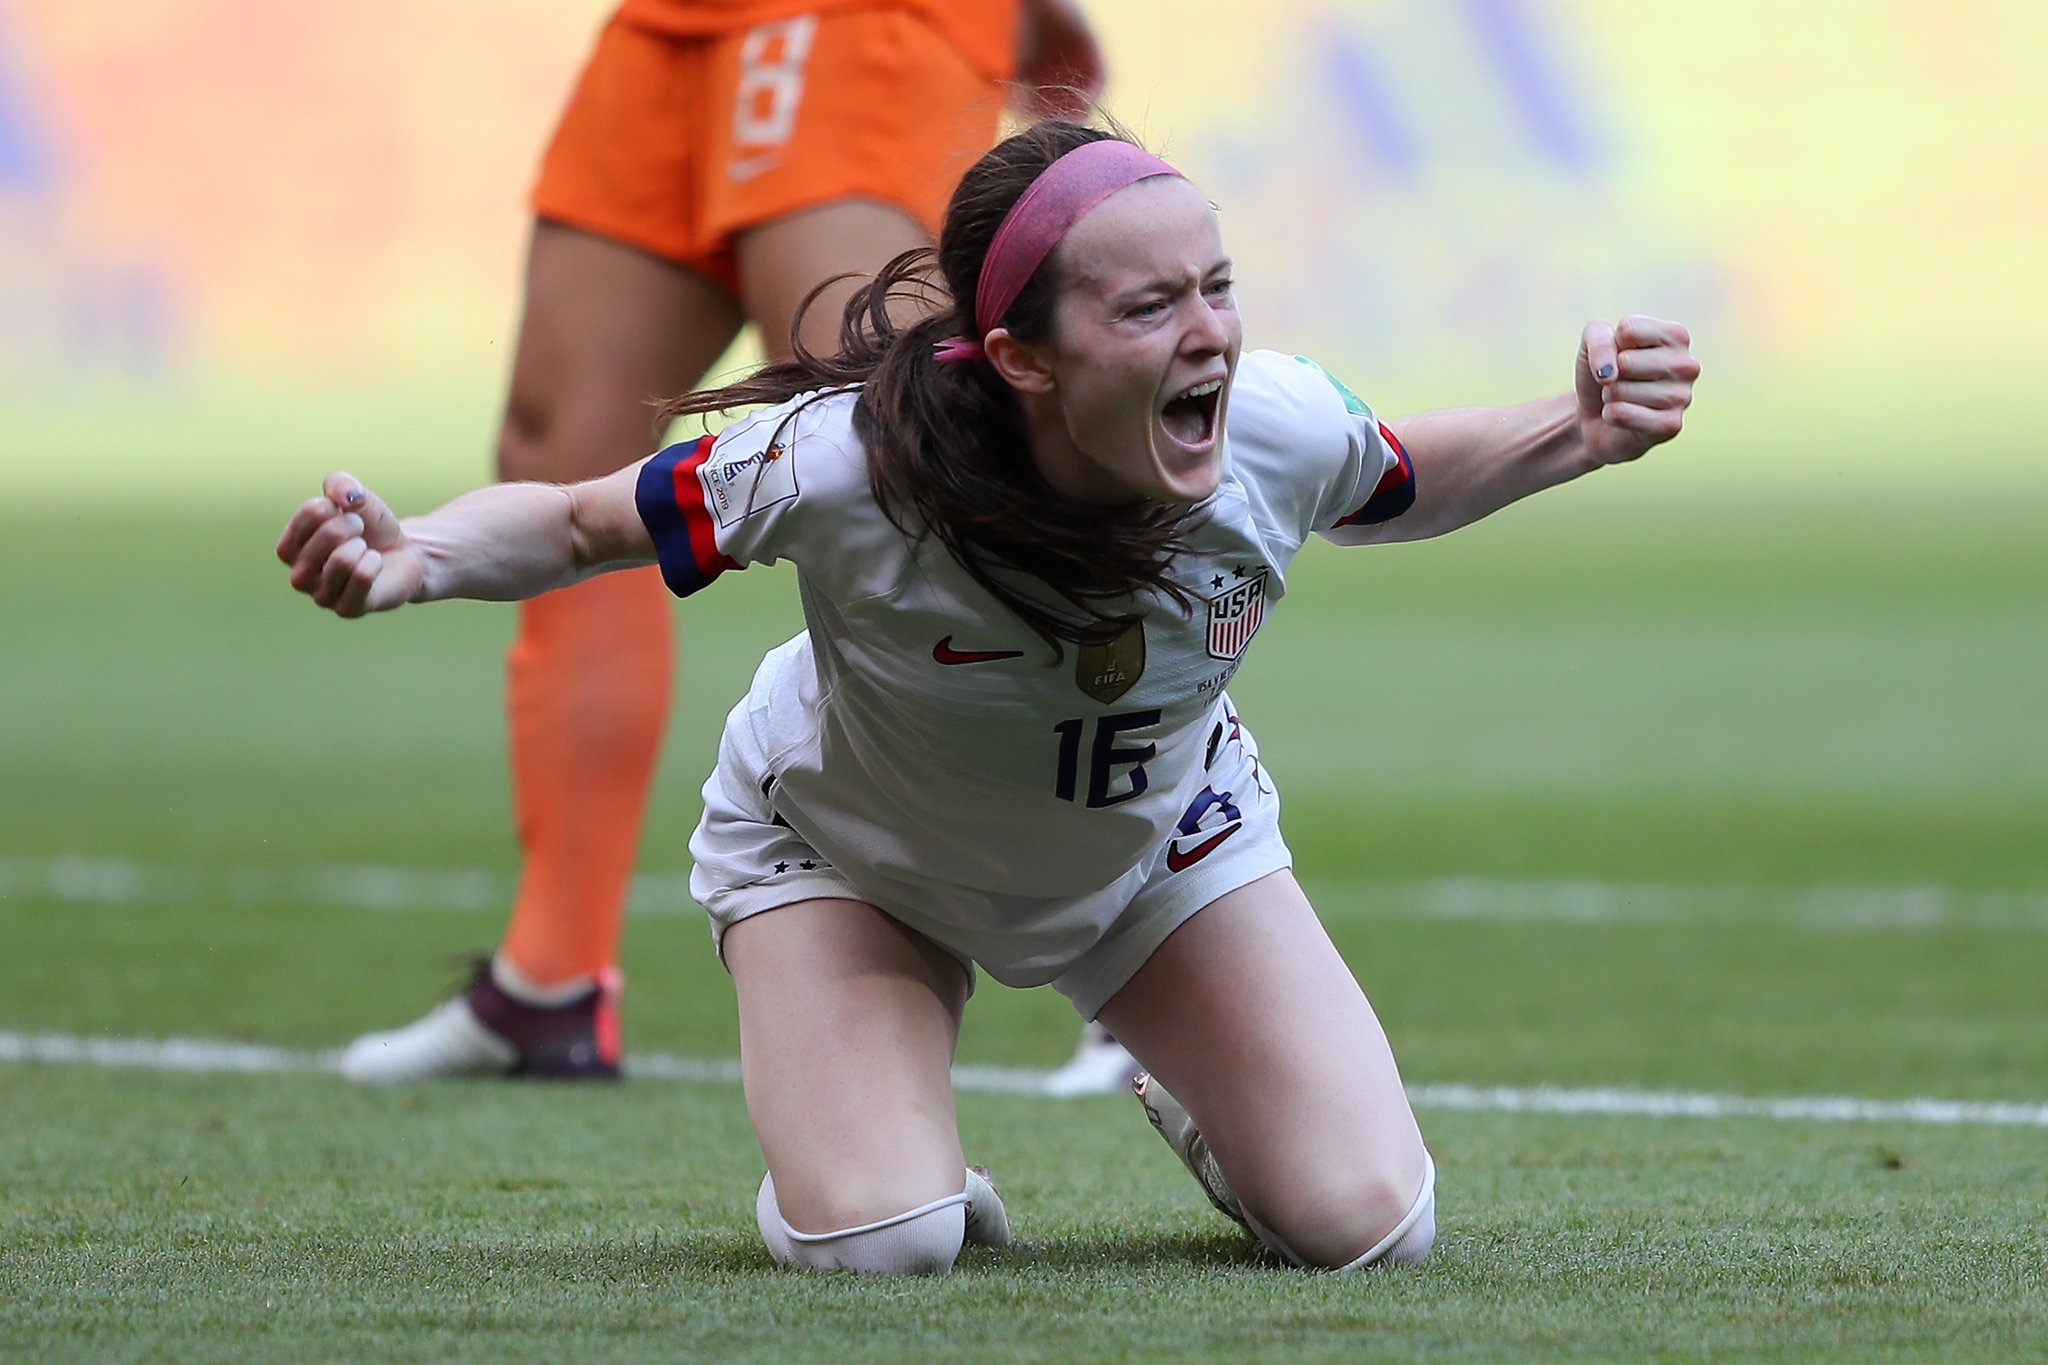 Rose Lavelle scores in World Cup final as USWNT claims